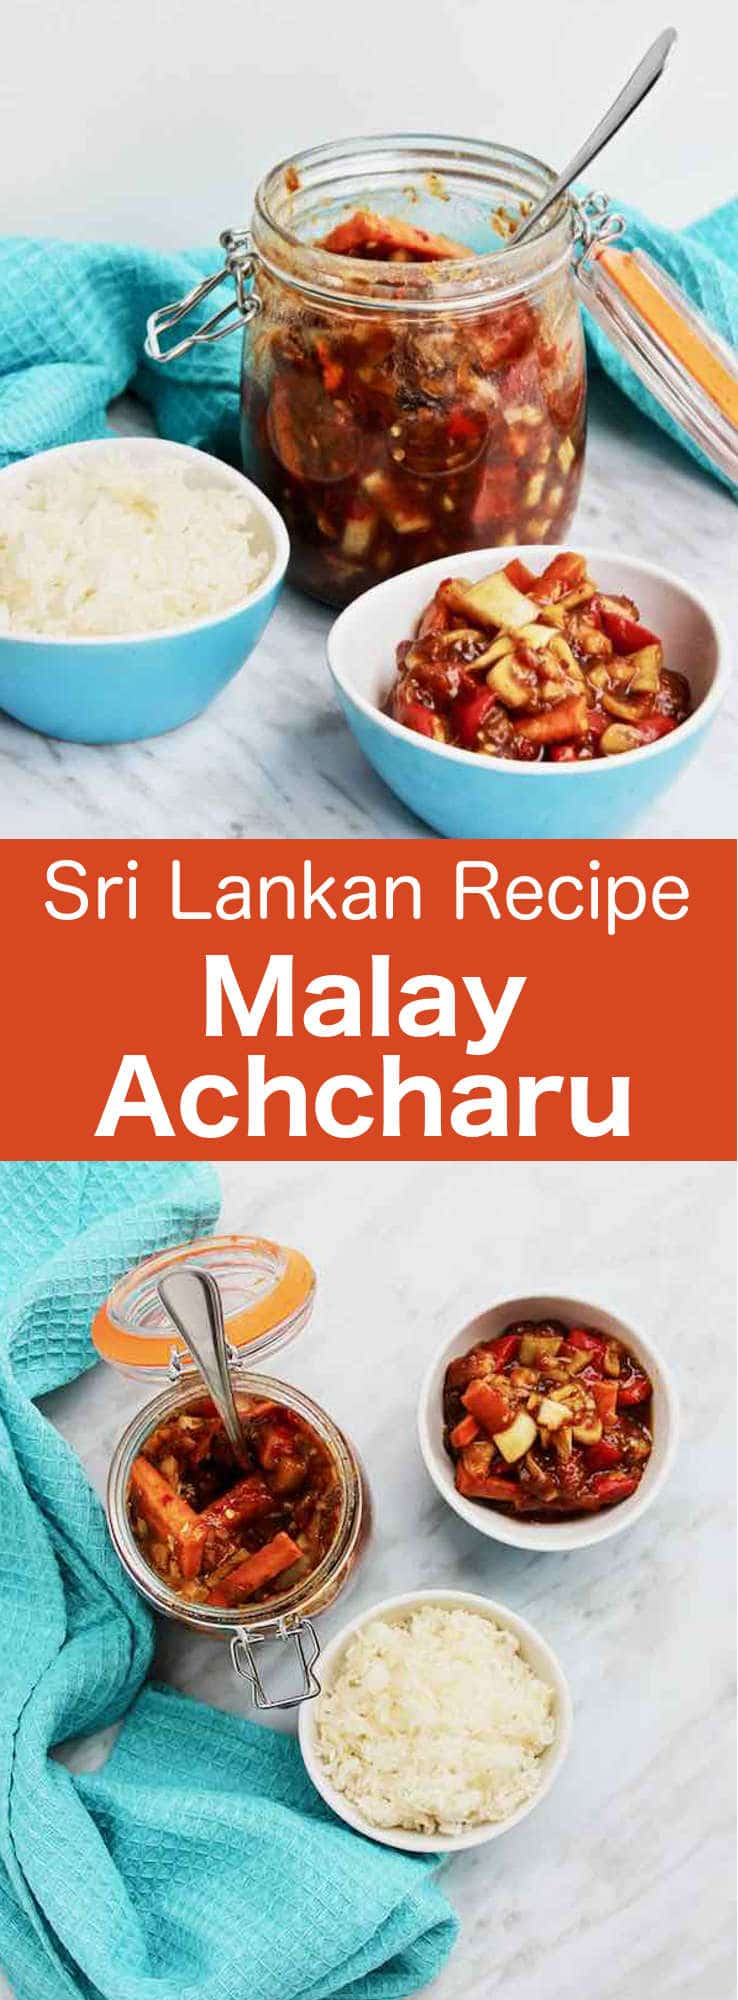 Malay achcharu, also known as Malay pickle, is a popular chutney from Sri Lanka. It is often served as an accompaniment to a rice main dish. #SriLanka #SriLankanCuisine #SriLankanChutney #SriLankanRecipe #WorldCuisine #196flavors